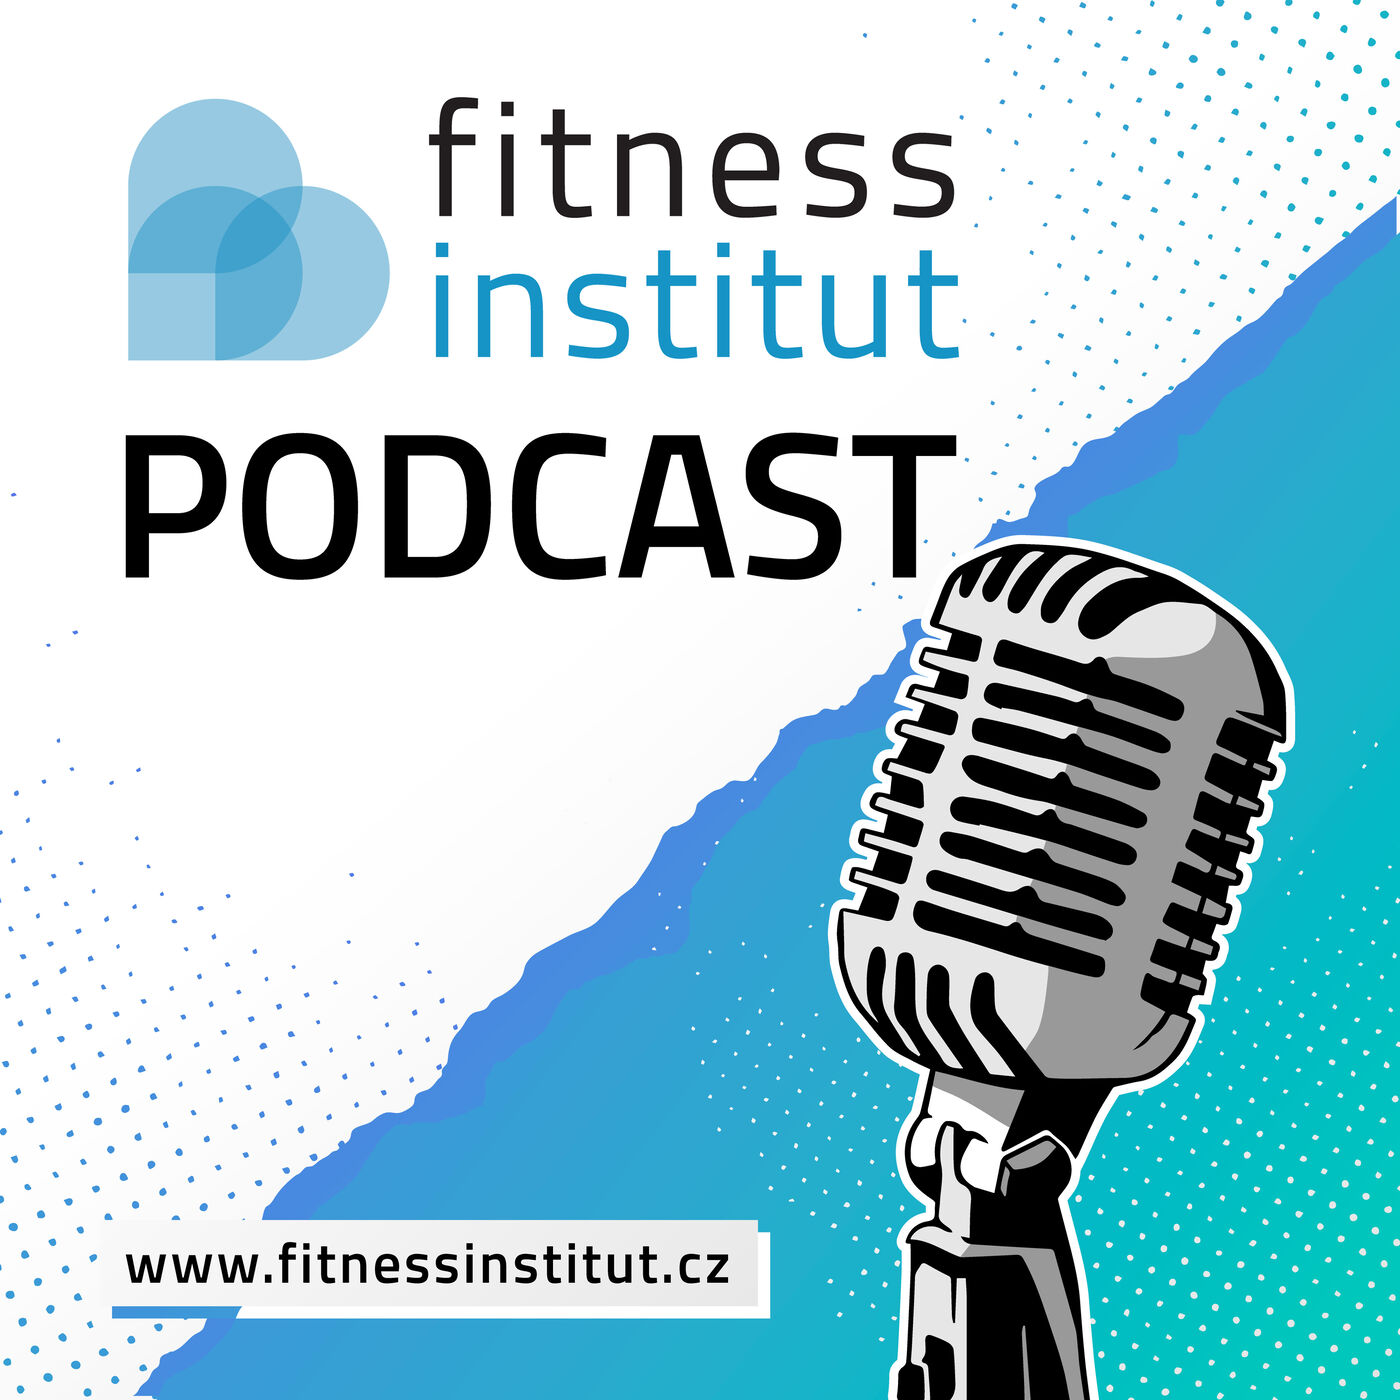 Fitness Institut Podcast ⎮ Tohle je Fitness Institut